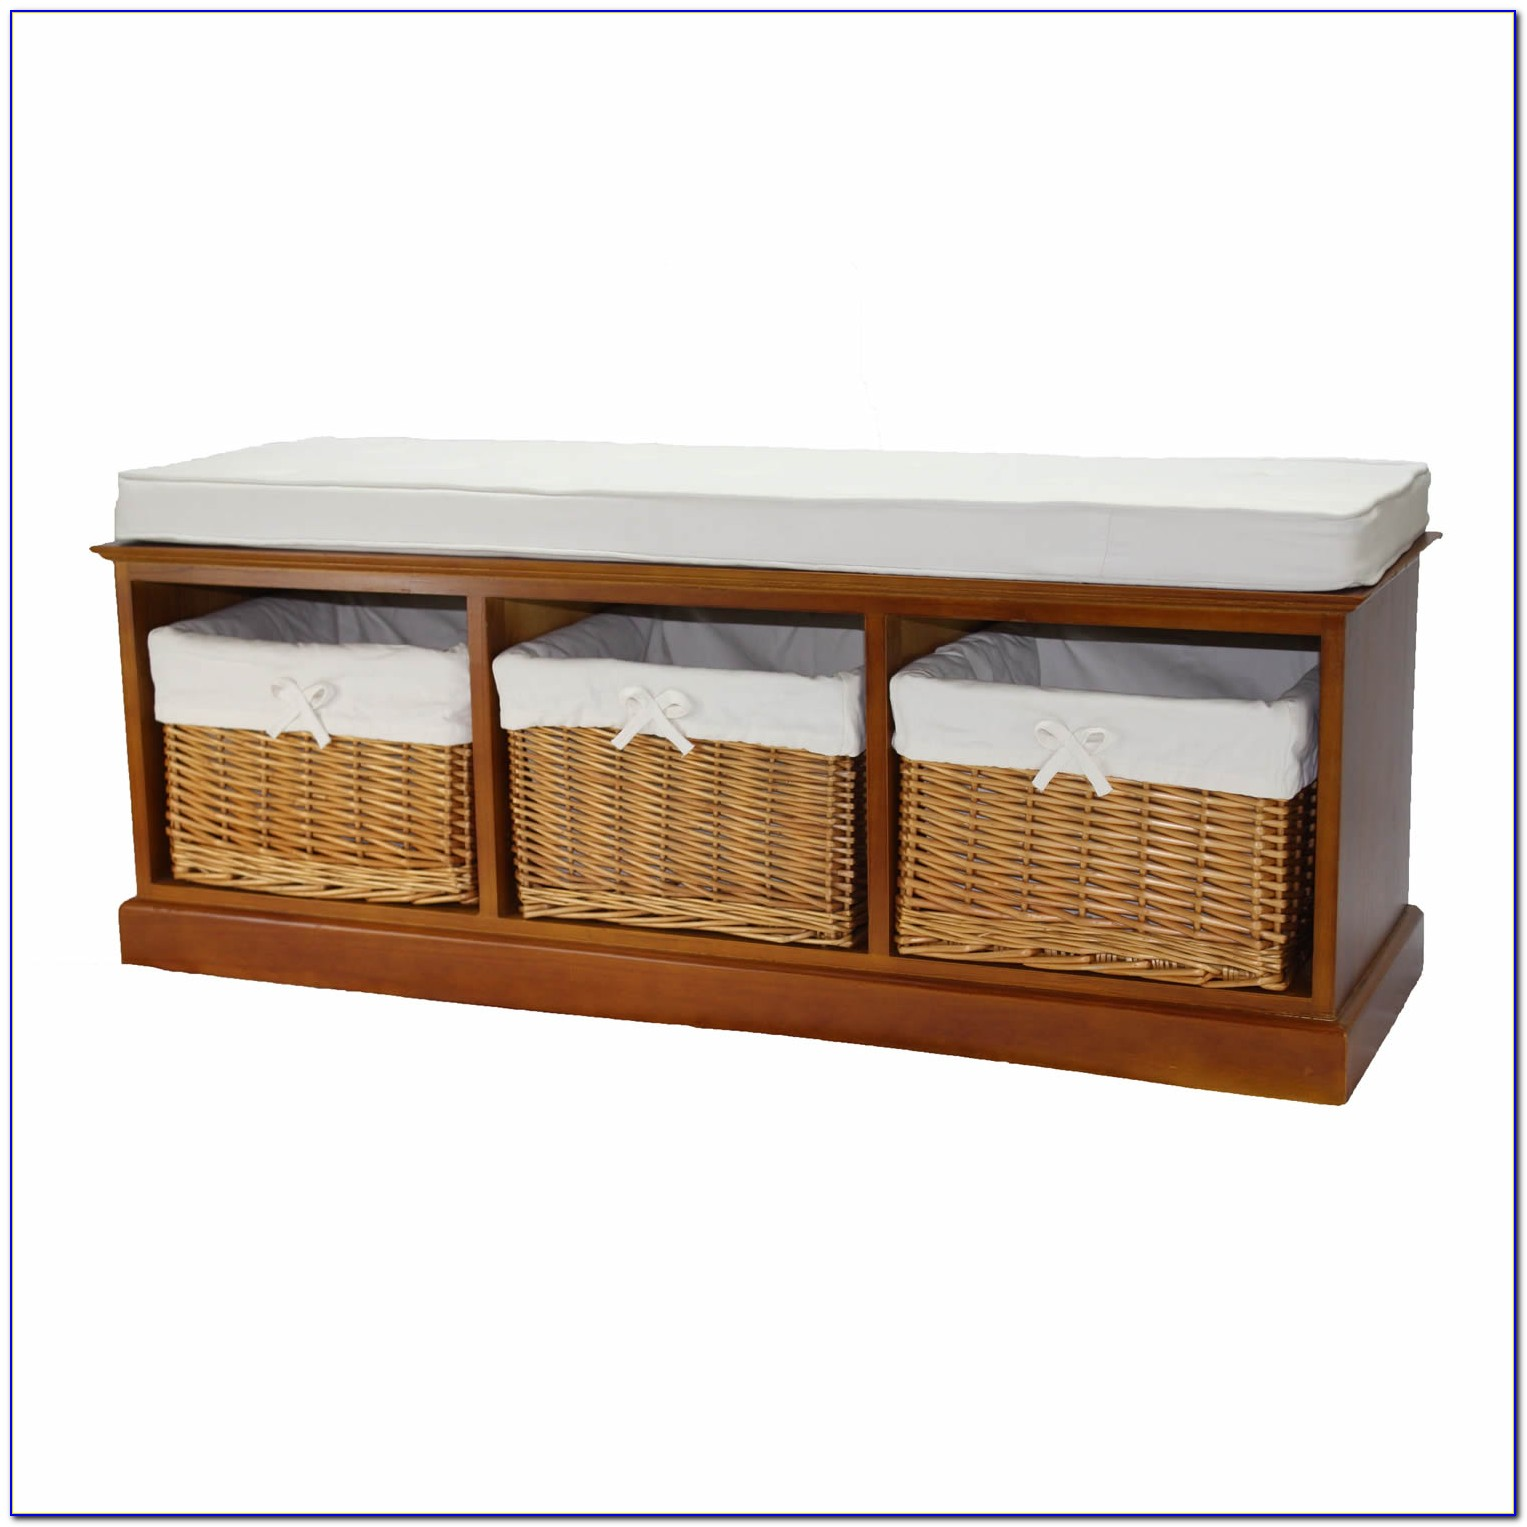 Bench With Wicker Storage Baskets